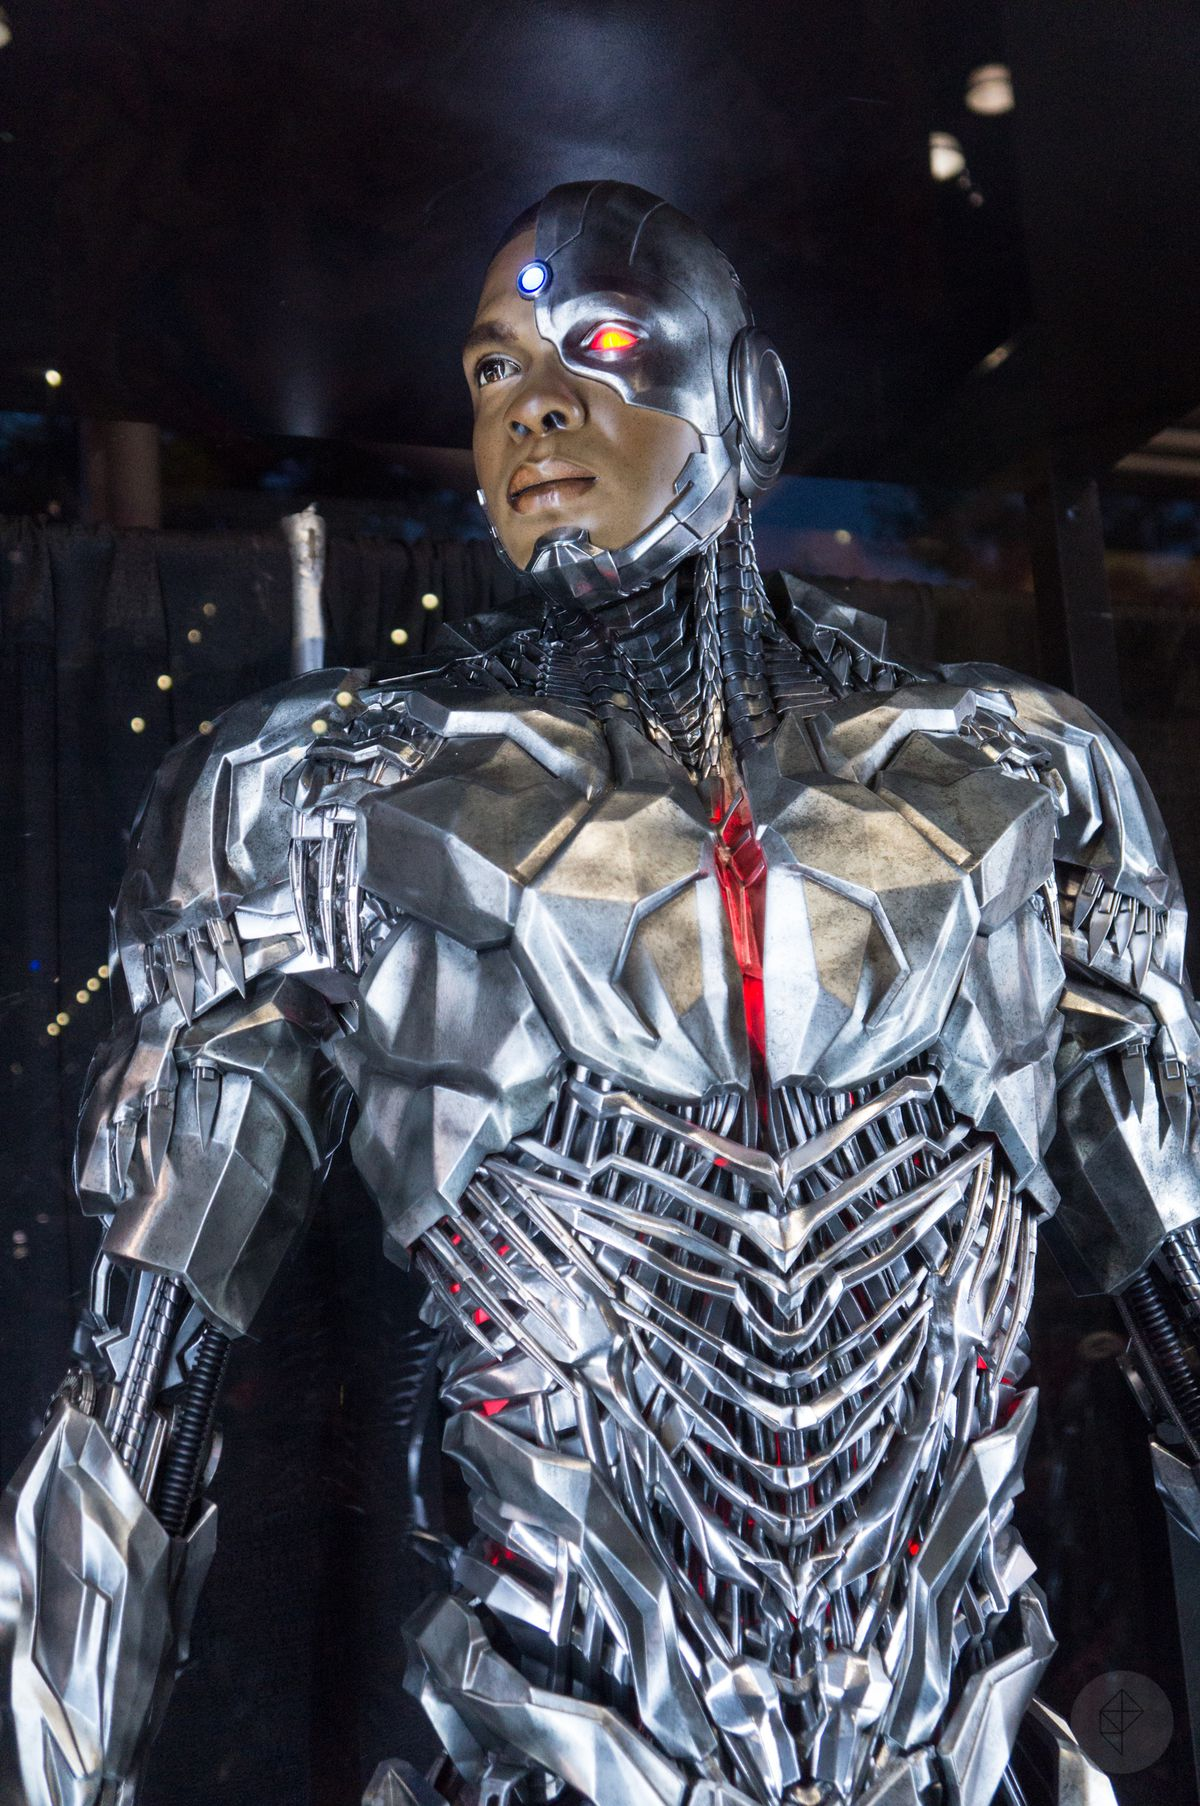 Cyborg costume from Justice League movie in glass case at NYCC 2017, top half